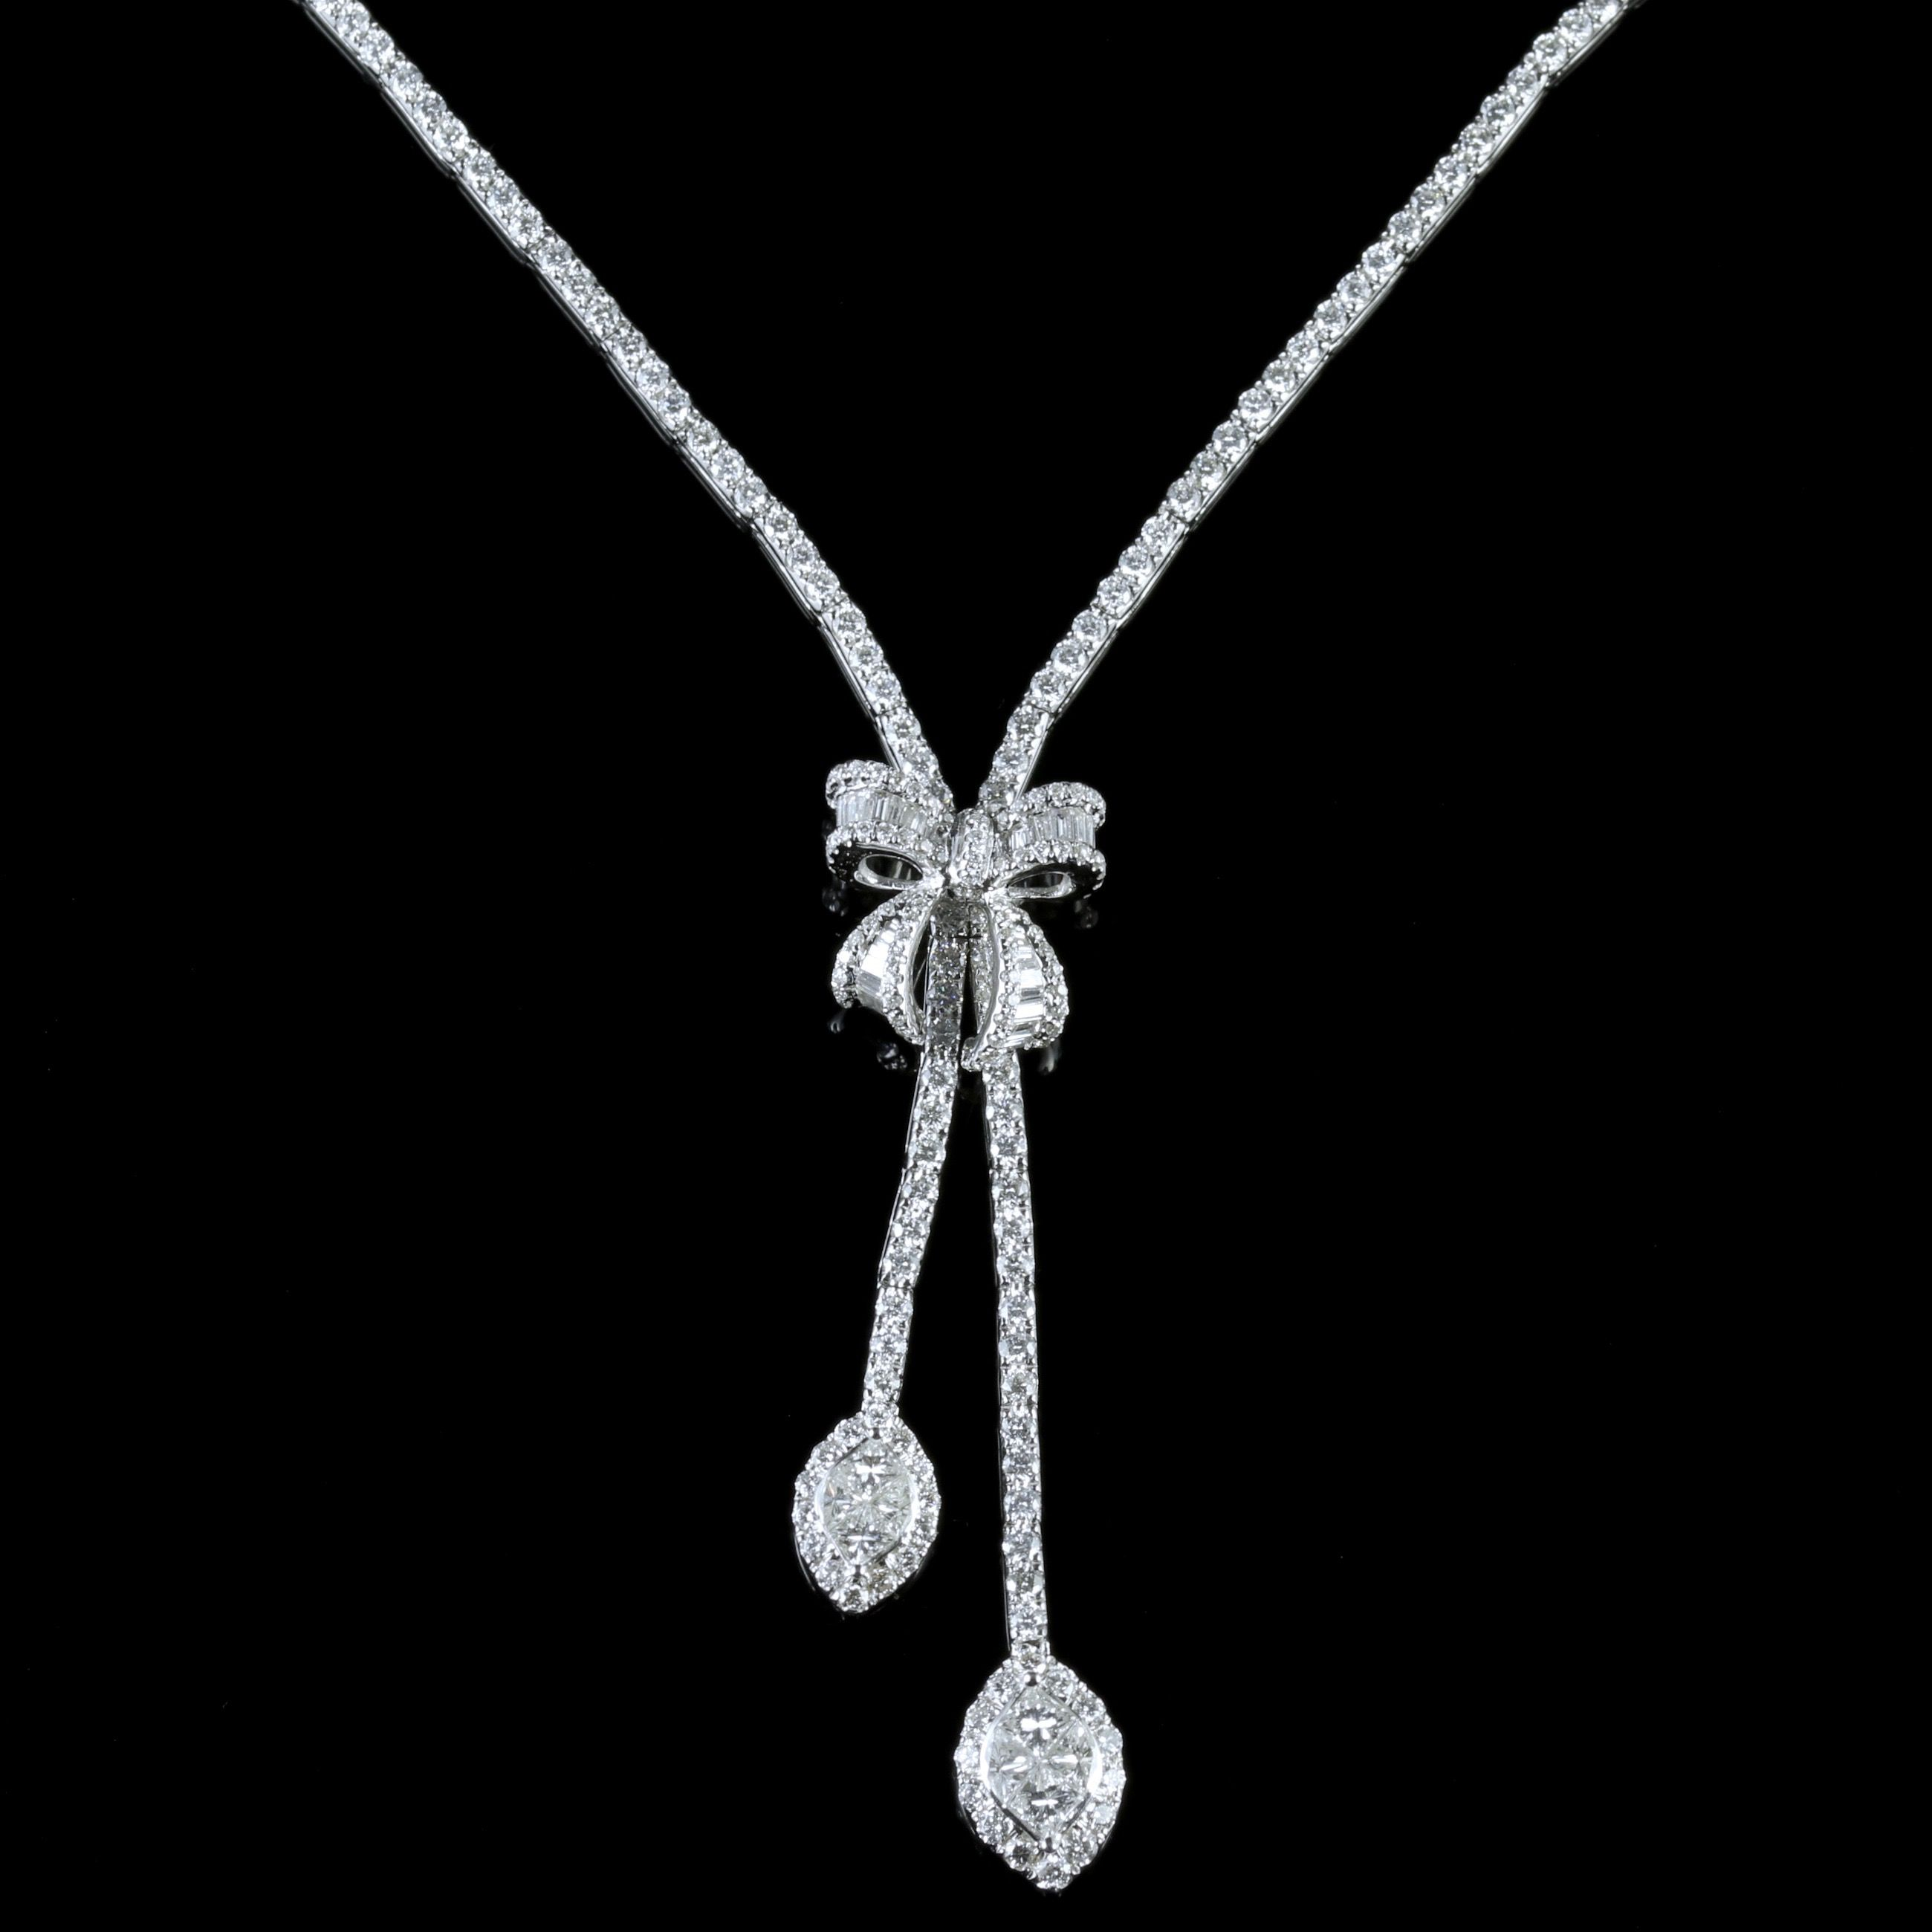 white marquis marquise features cut a diamonds chain cuts on pin diamond chains necklace our mini and